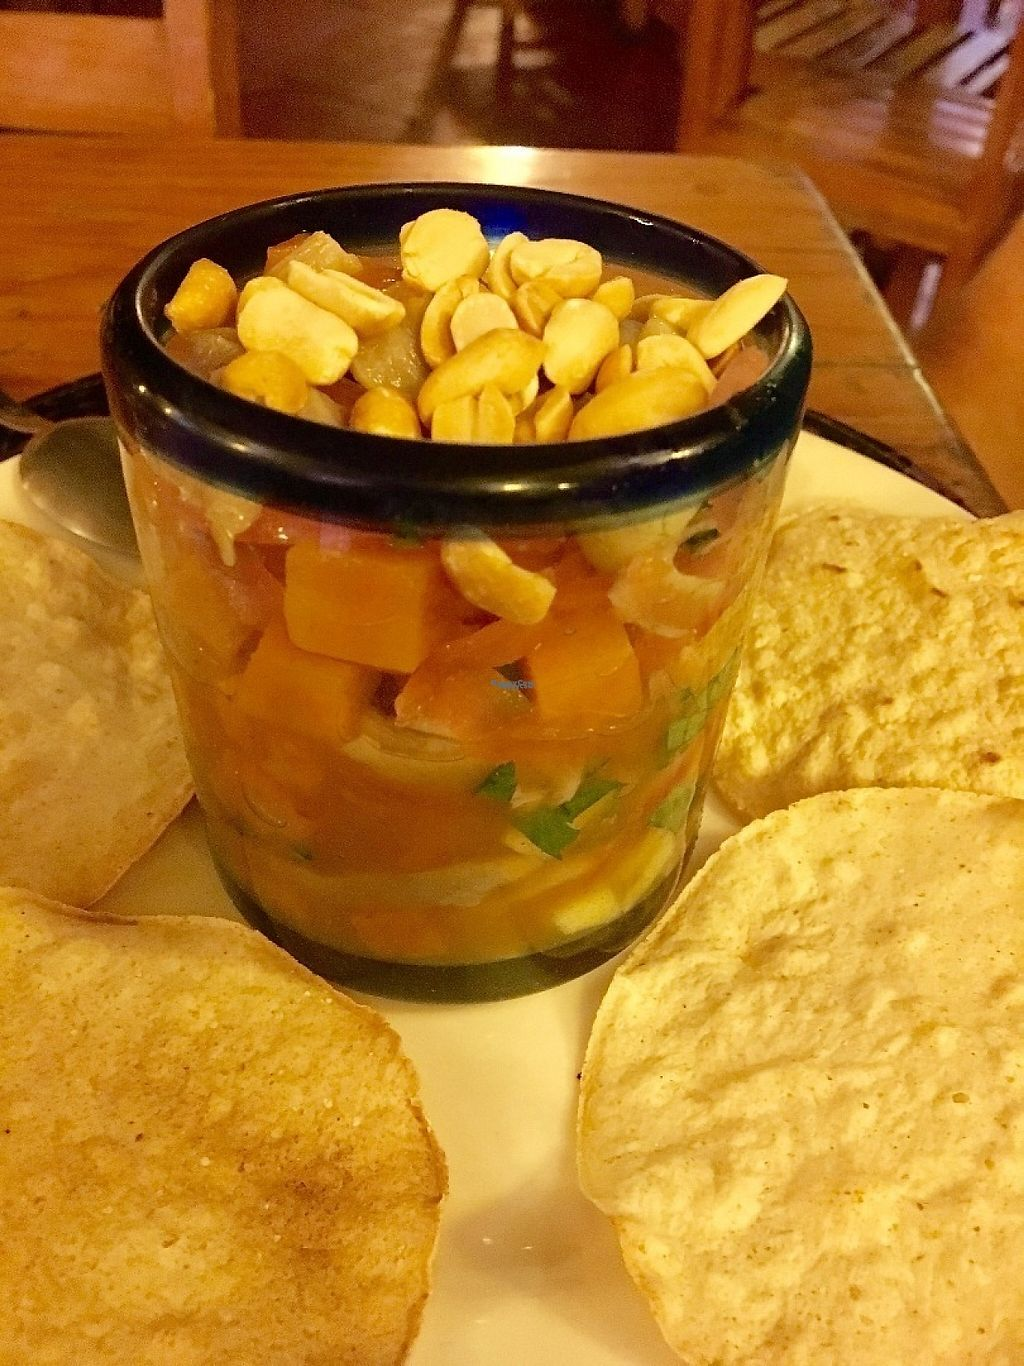 """Photo of Calabacitas Tiernas  by <a href=""""/members/profile/instantxkarmaa"""">instantxkarmaa</a> <br/>Vegan ceviche <br/> February 8, 2017  - <a href='/contact/abuse/image/42595/224457'>Report</a>"""